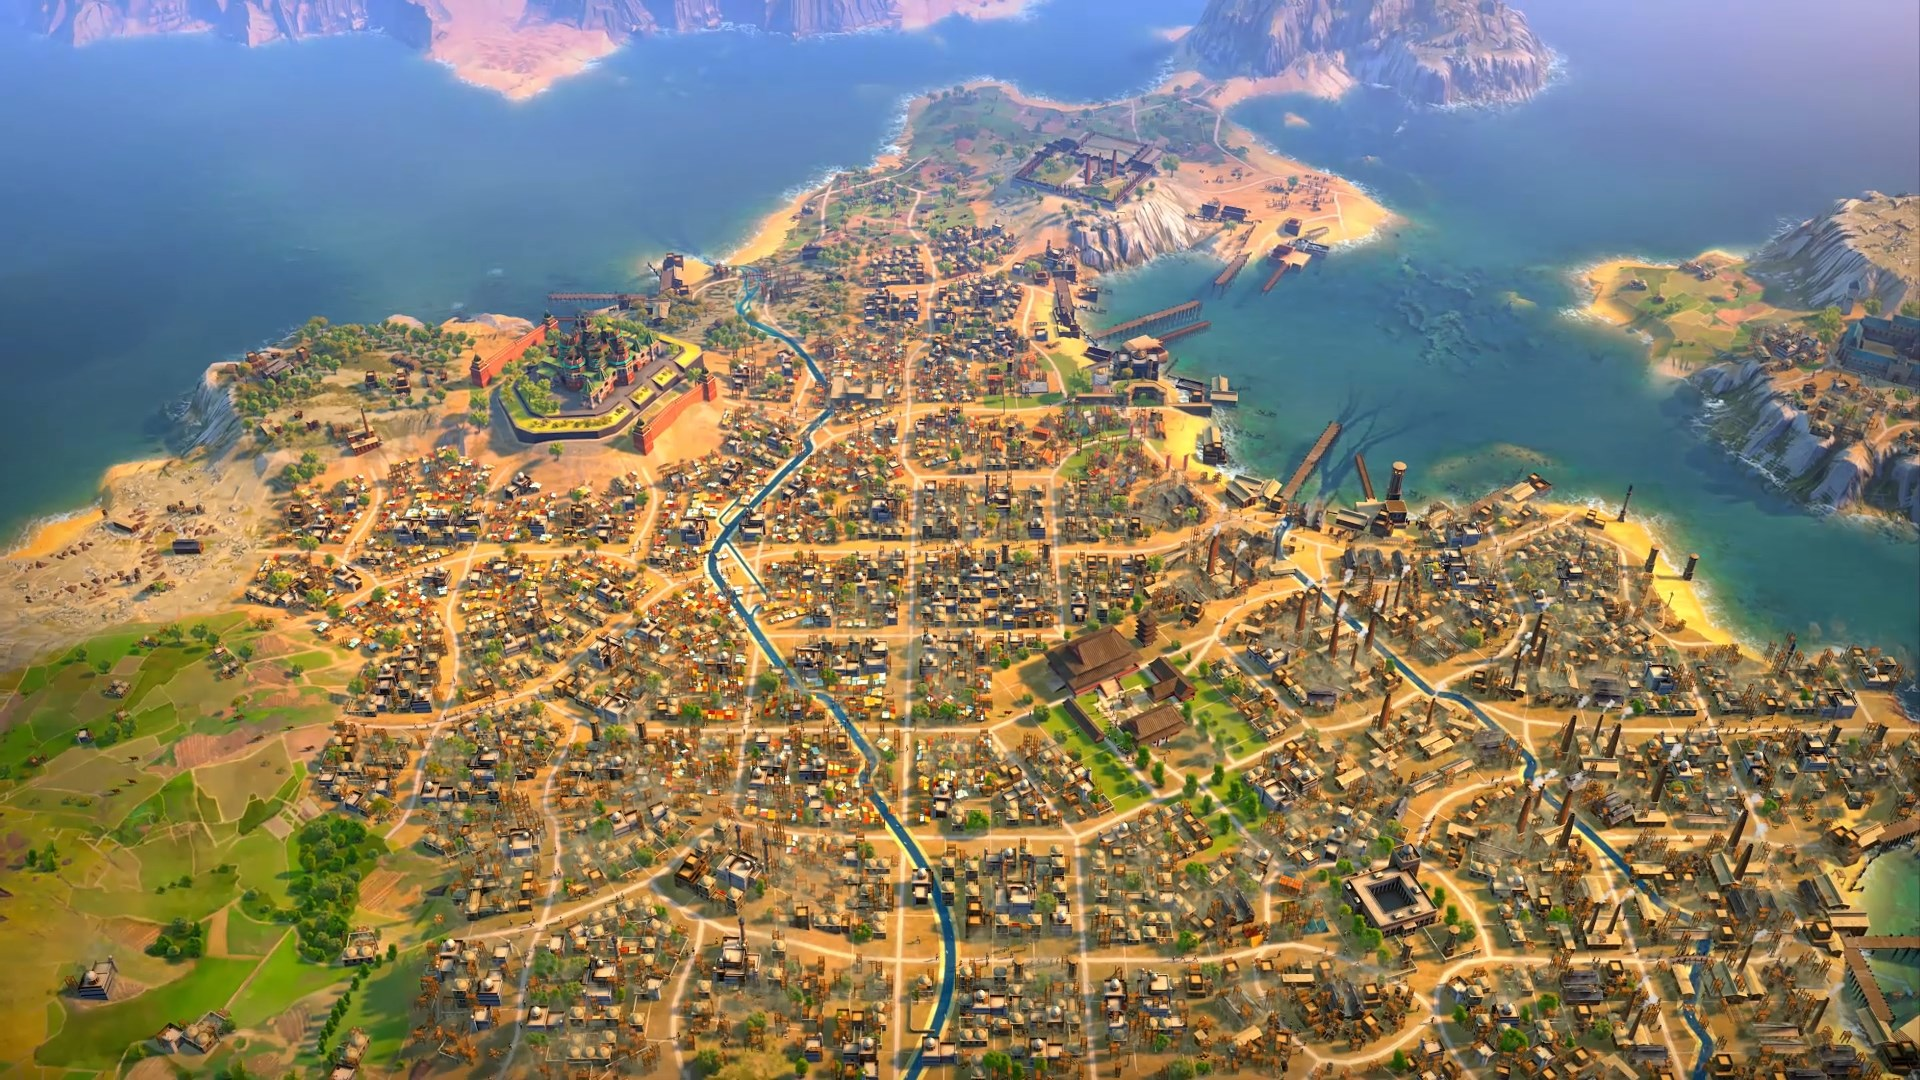 Humankind gameplay details - cities can sprawl across whole territories in Humankind